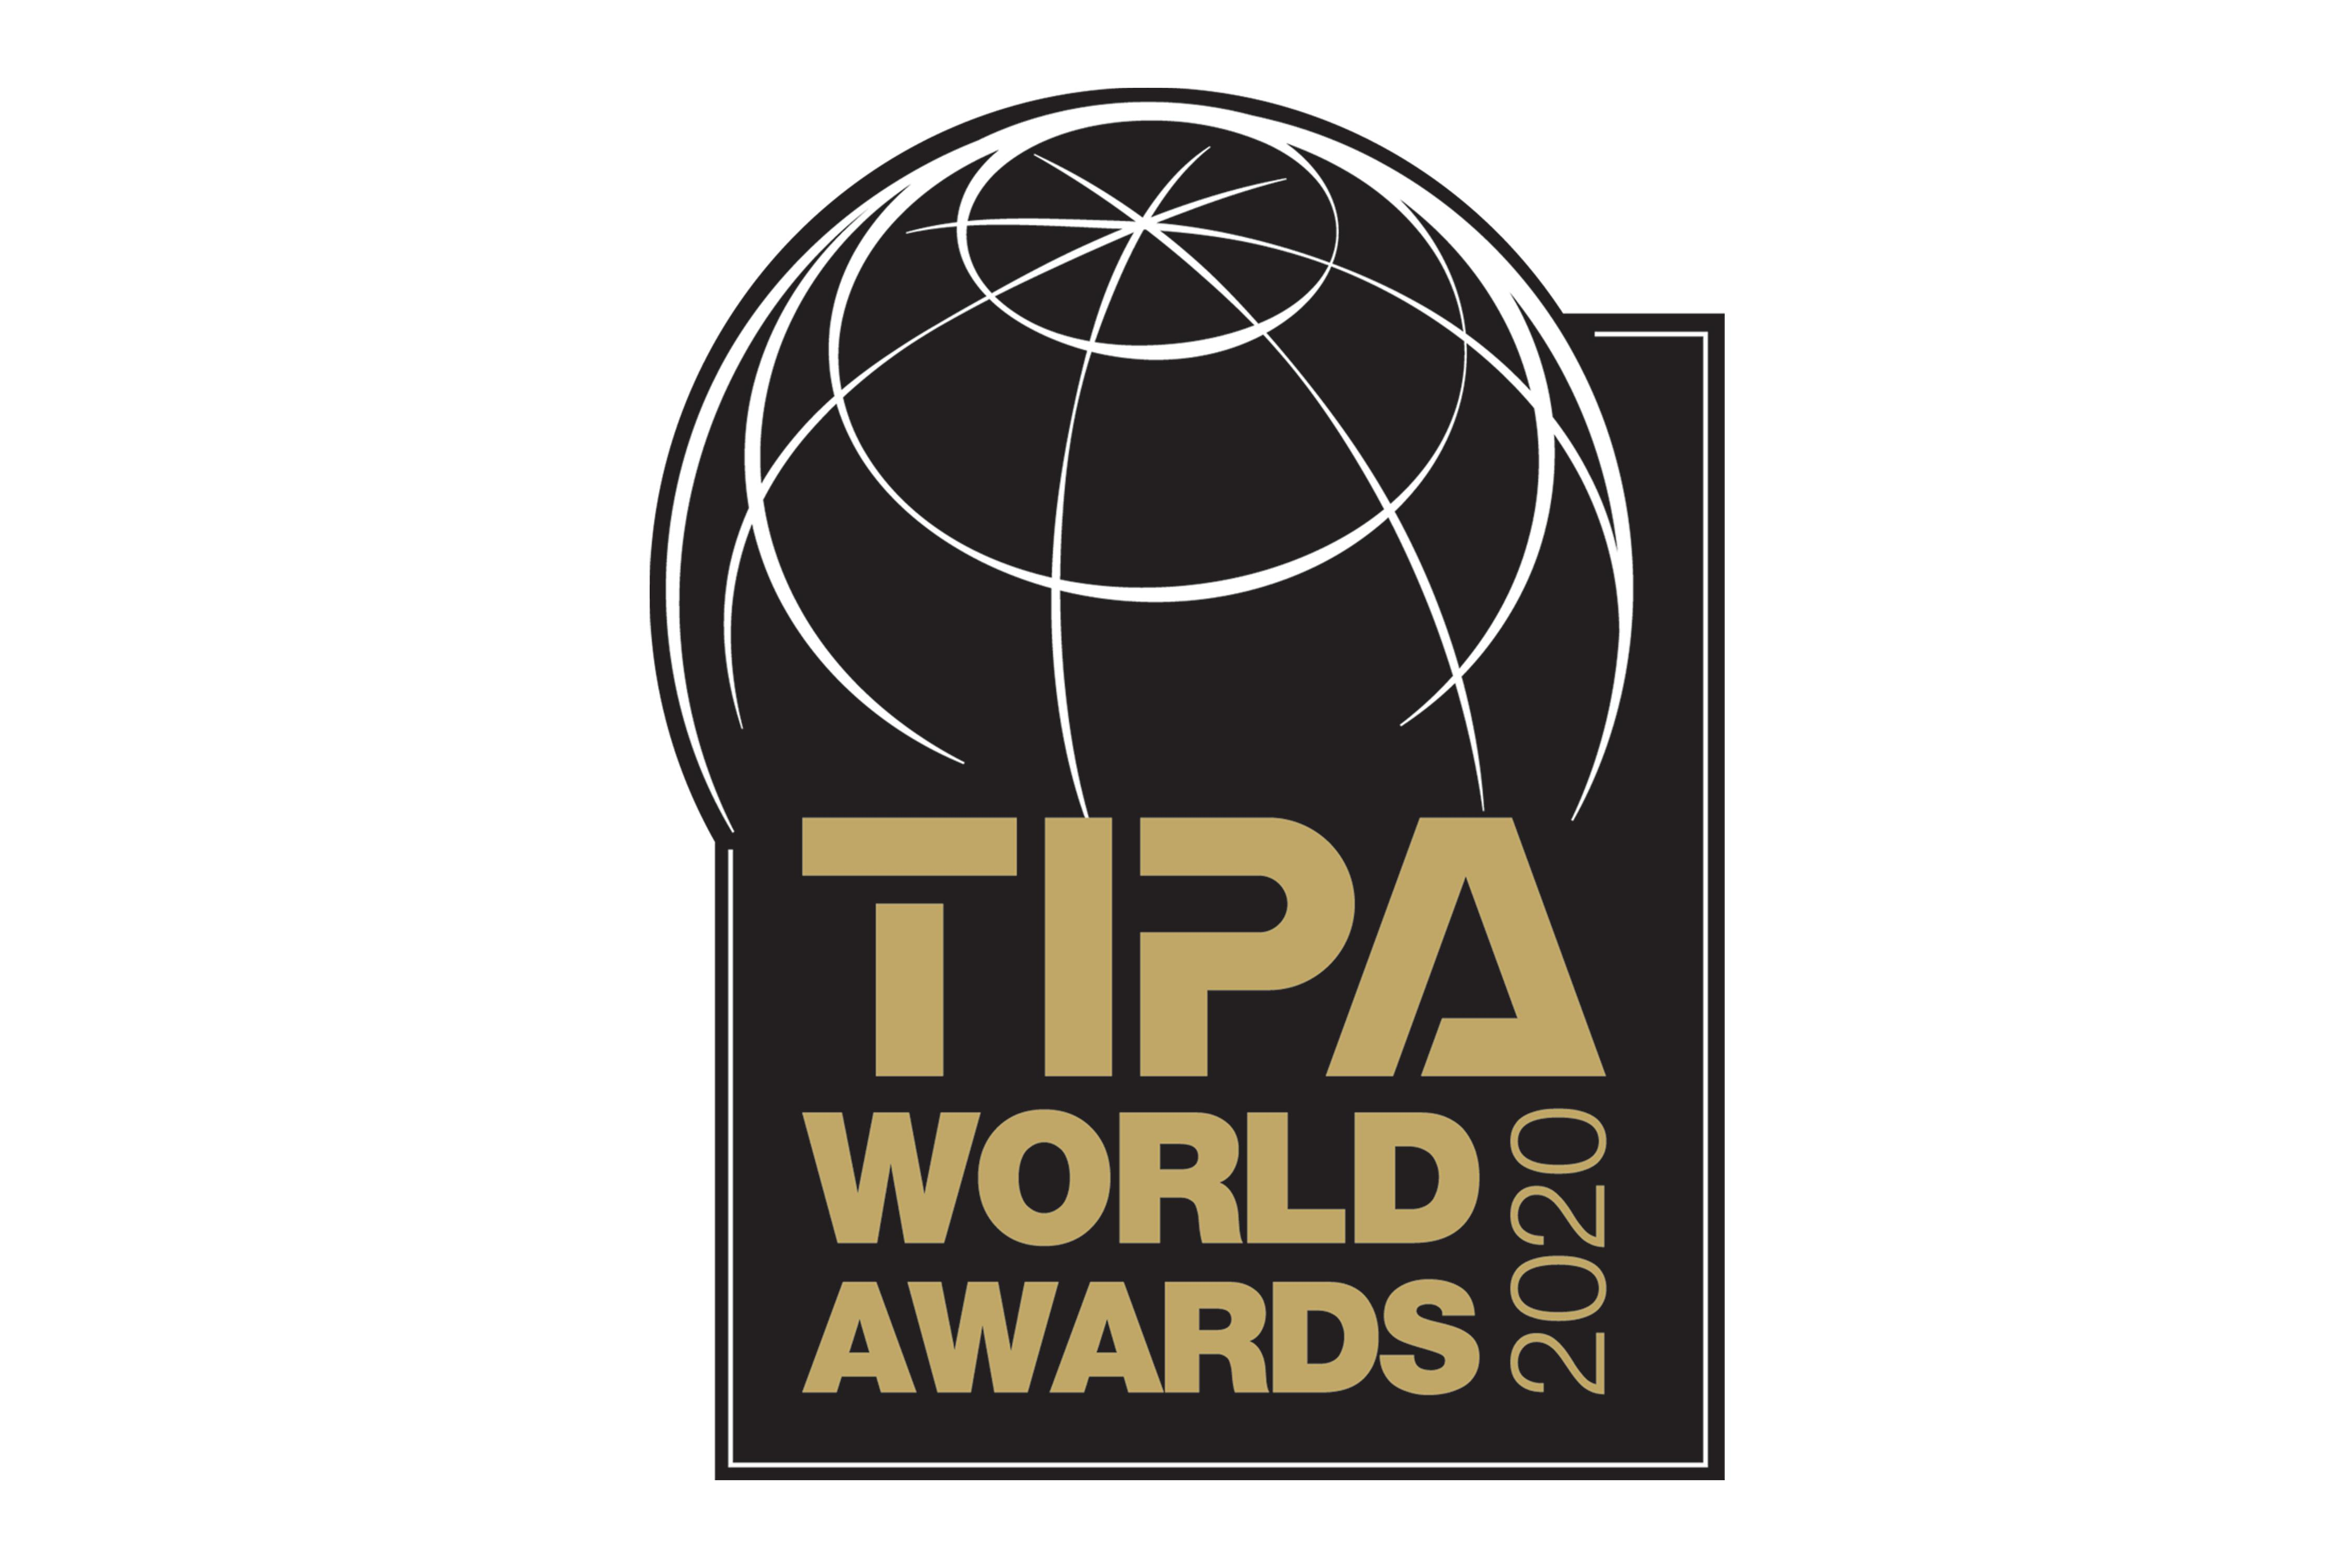 TIPA World Award 2020 für WhiteWall